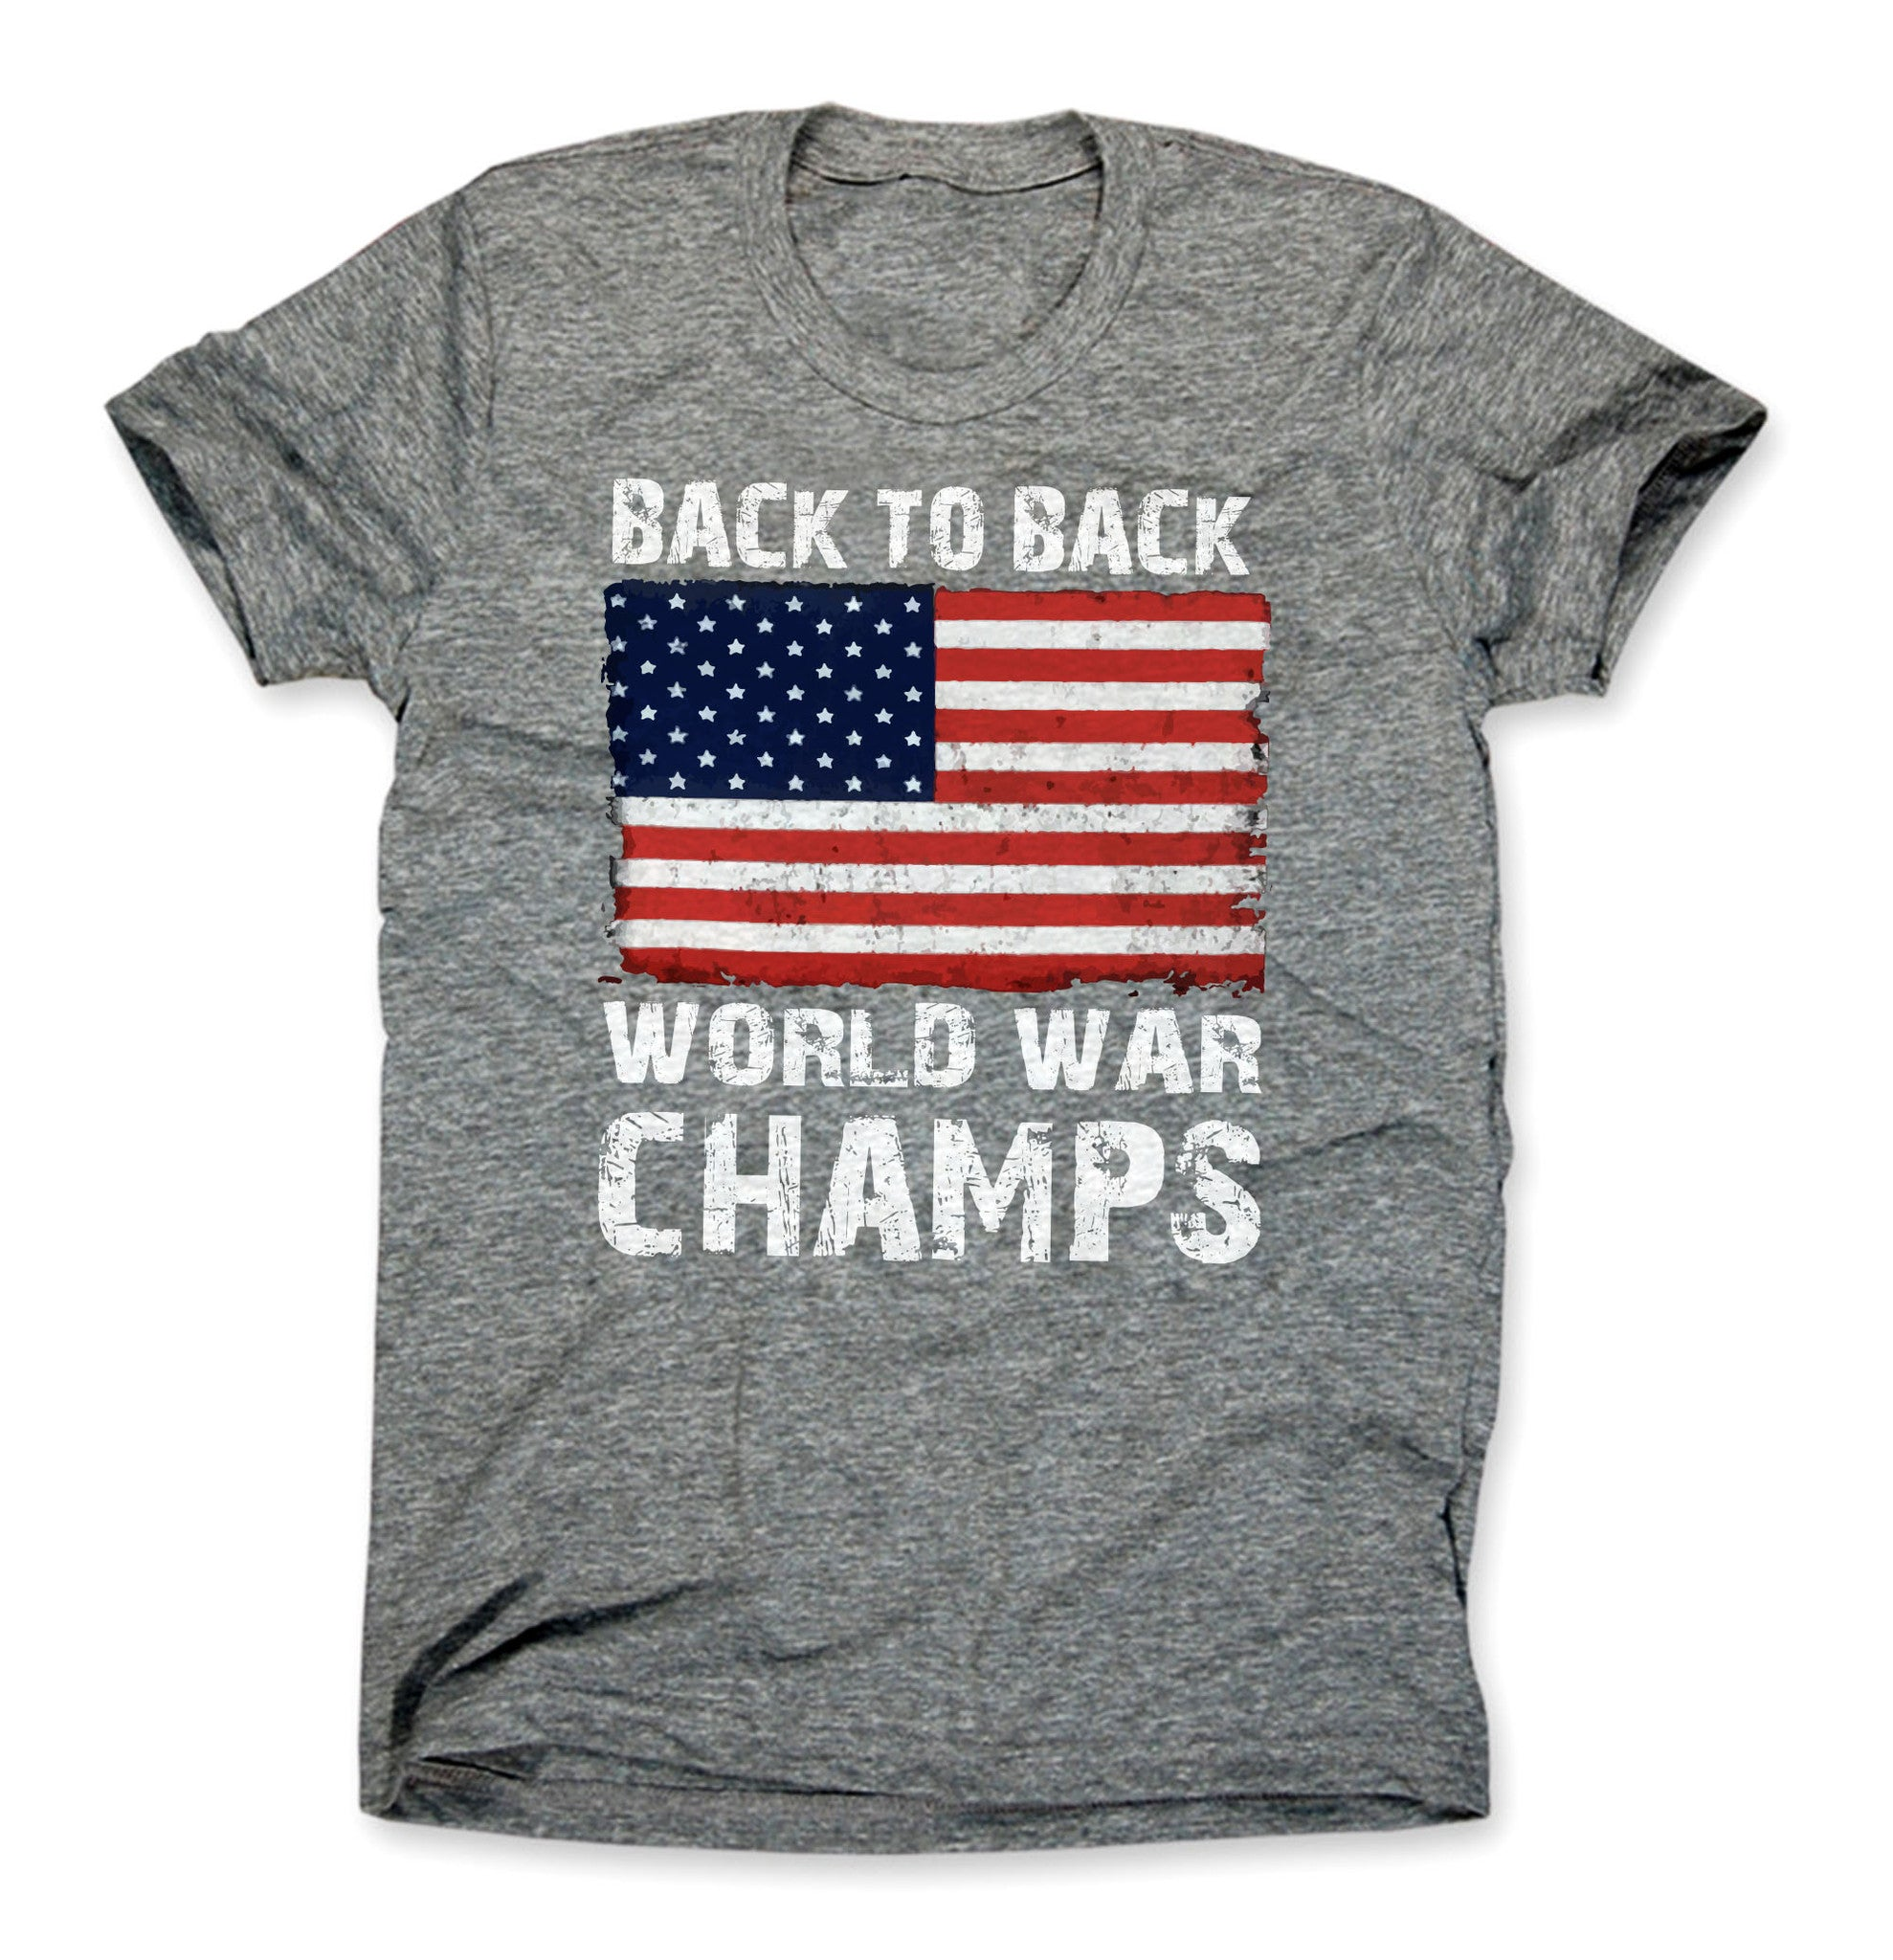 4d3ade20 Back to Back World War Champs American Flag Shirt – Merica Supply Co.